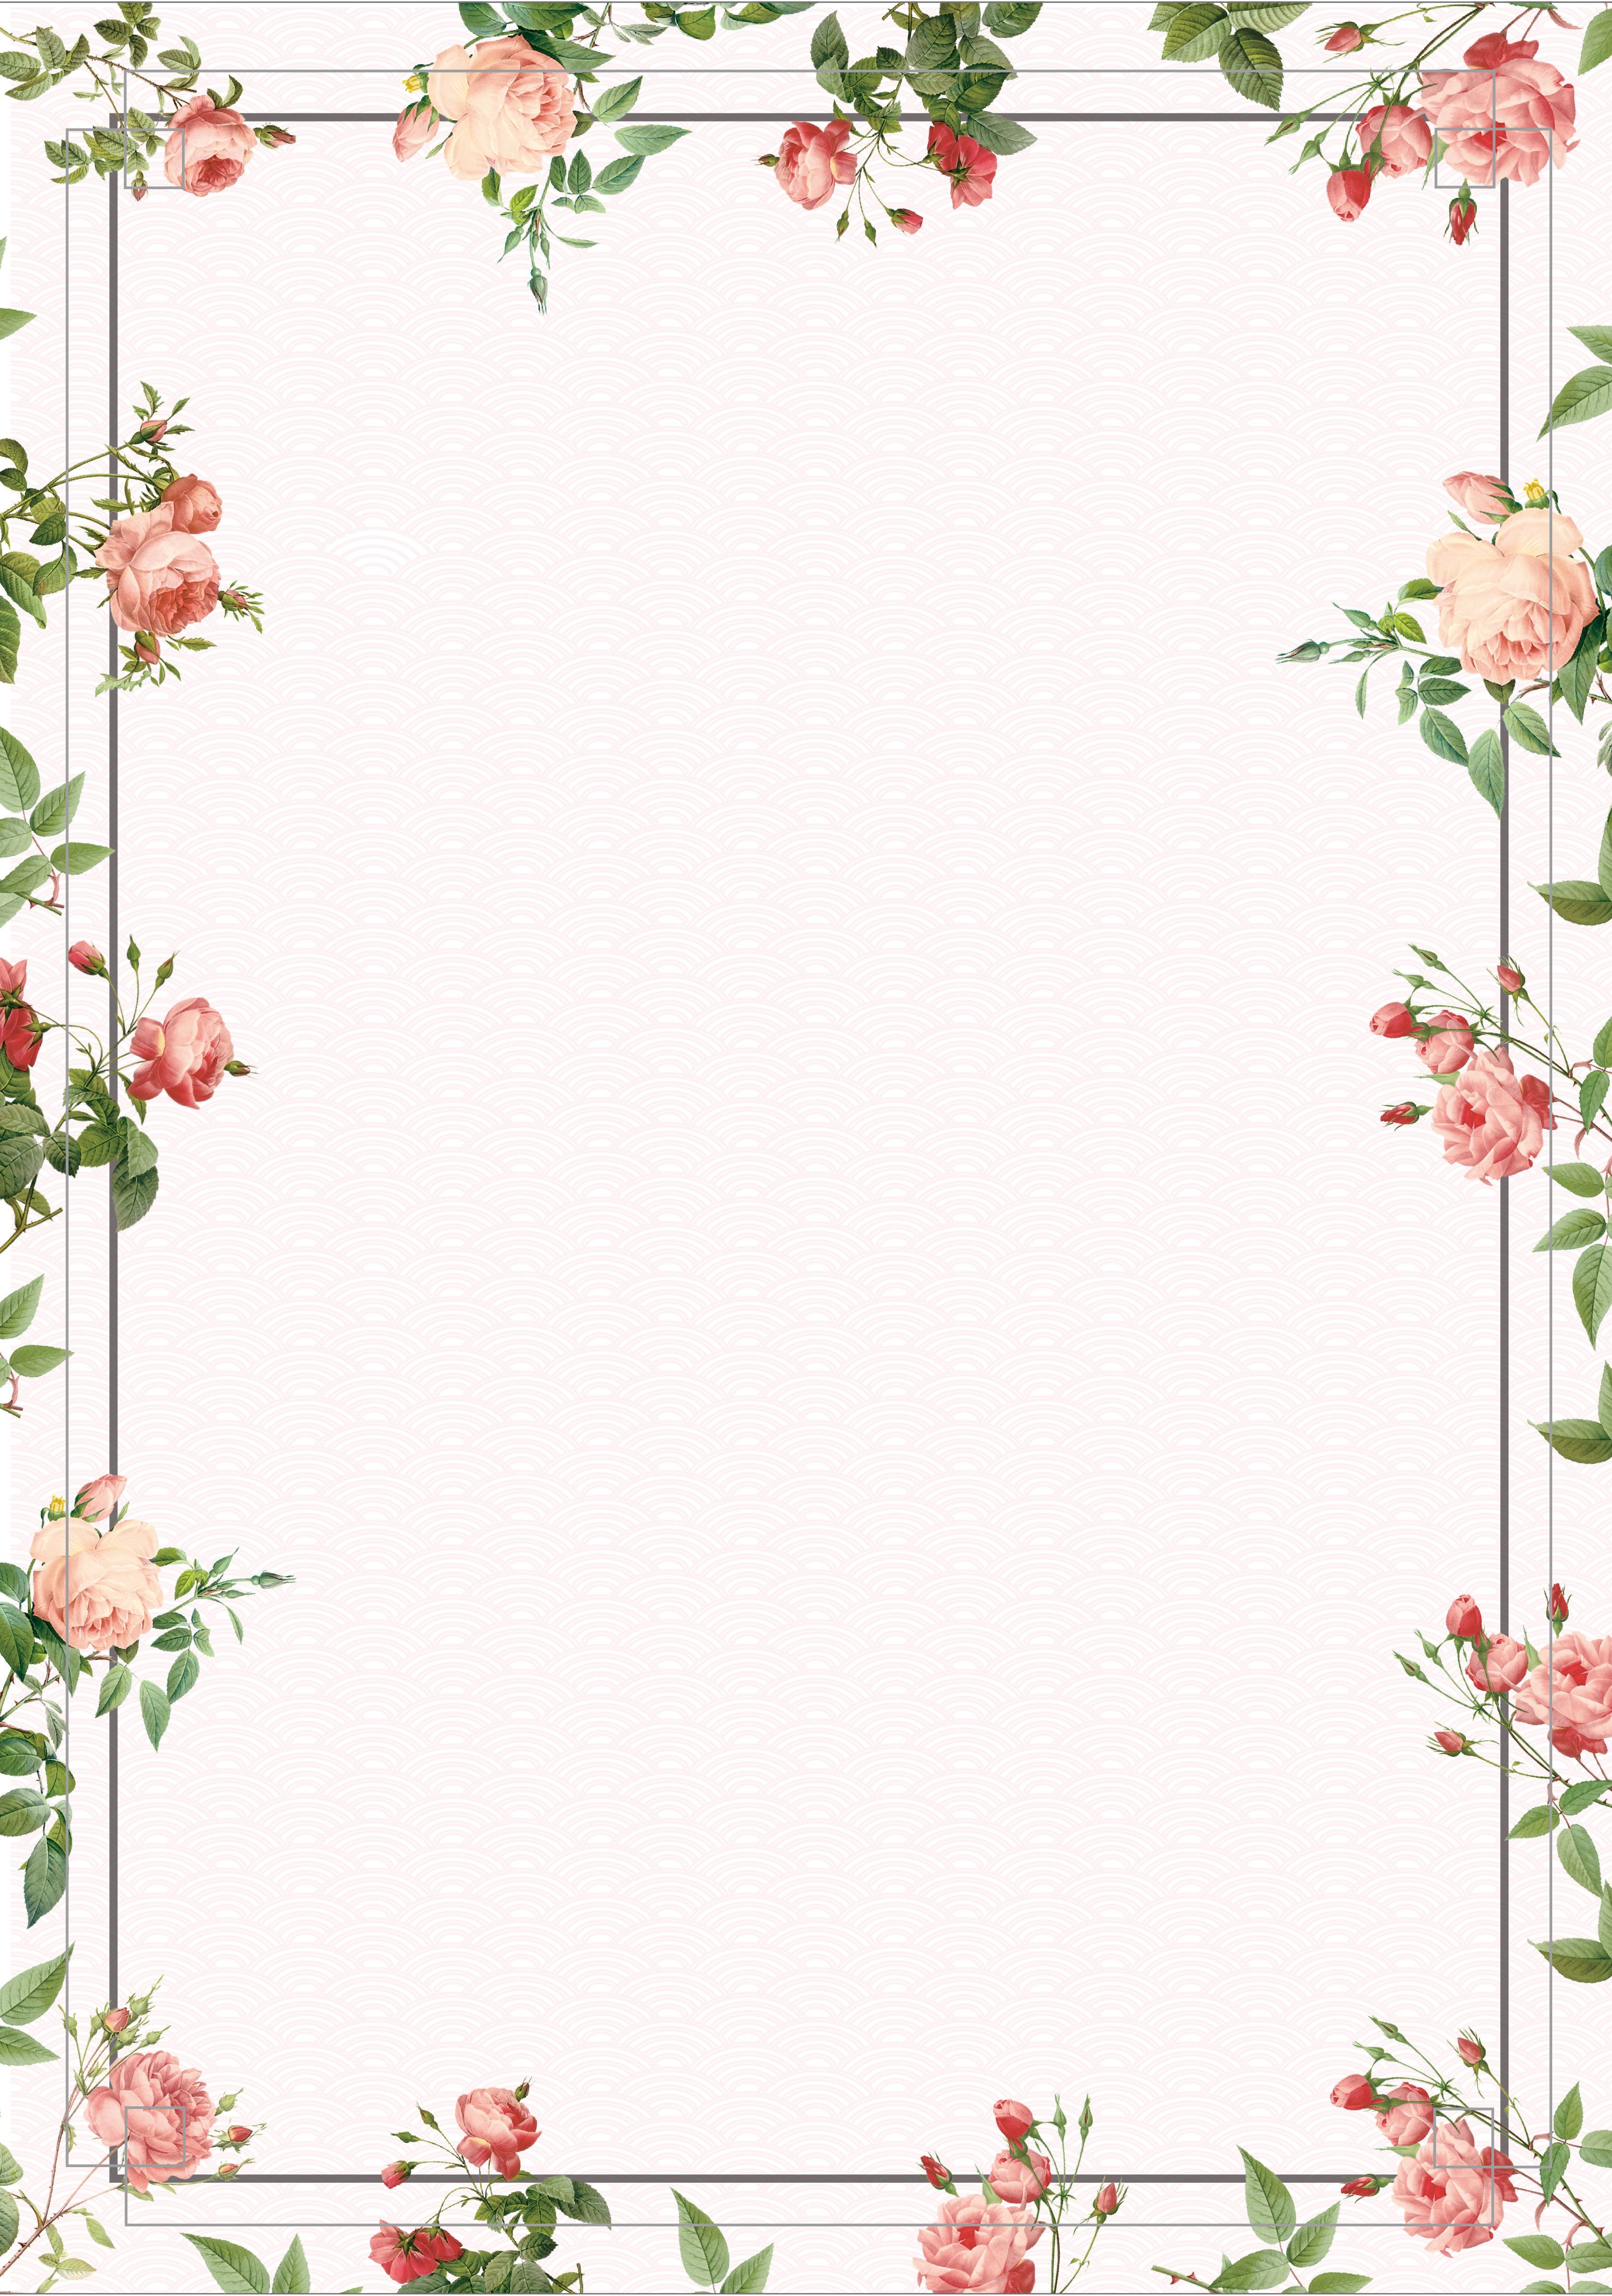 Vintage Posters Flowers Border Background in 2019 Flower picture 3101x4418